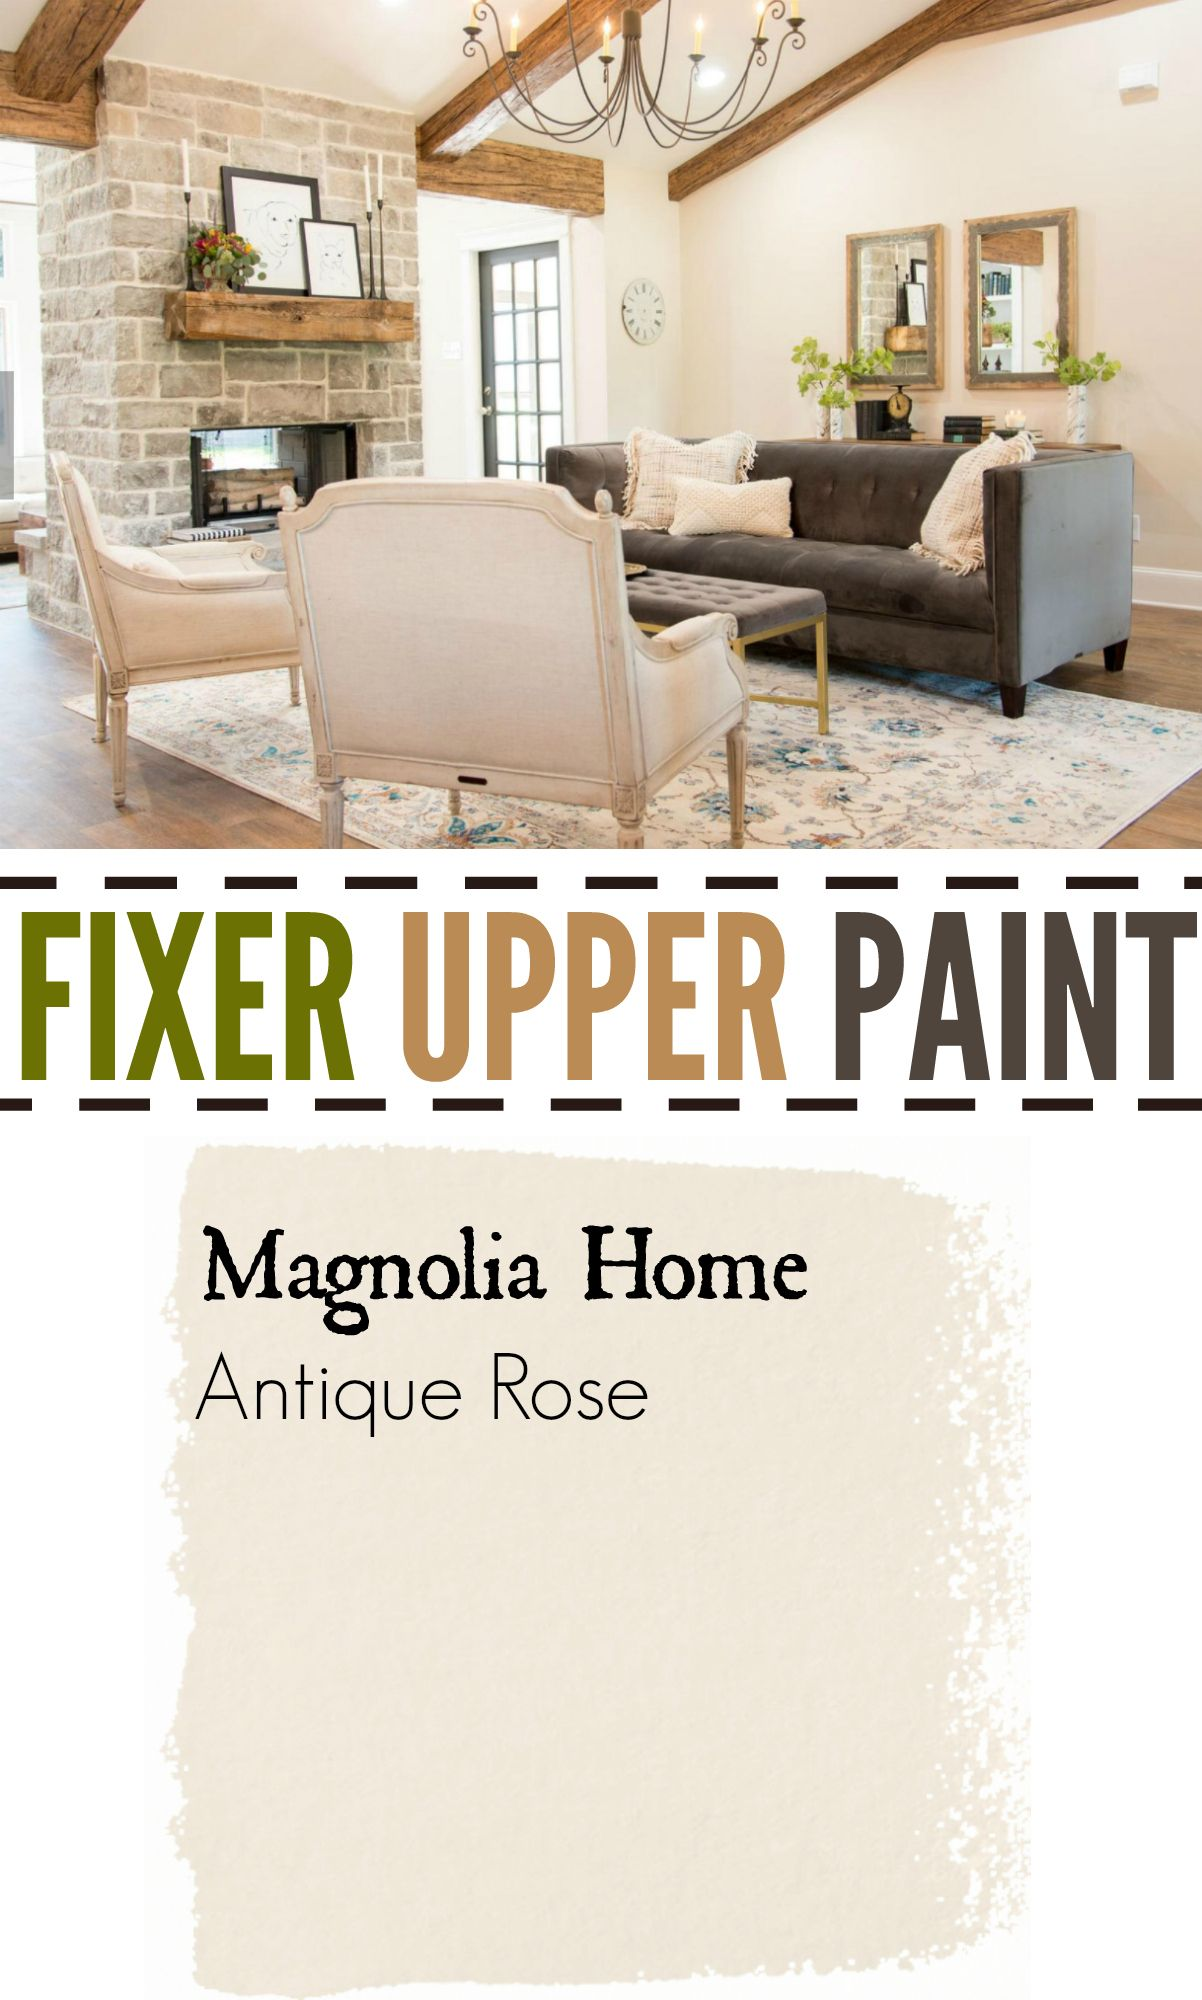 Fixer Upper Season Four Paint Colors Best Matches For Your Home ...